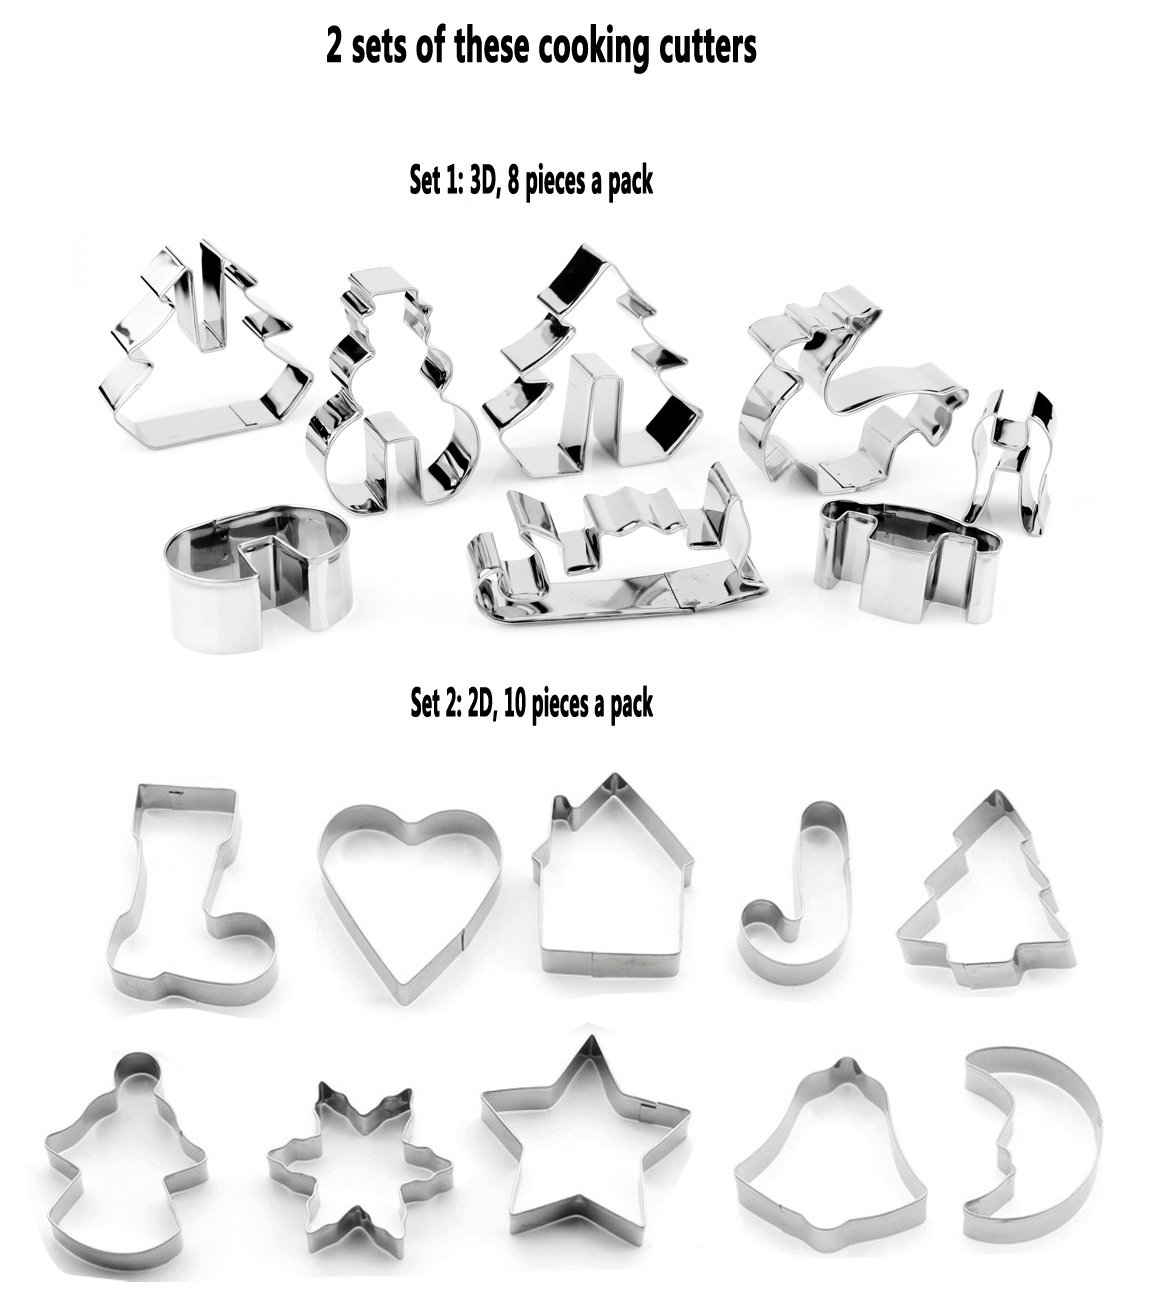 18 Pieces Christmas Holiday Metal Cookie Cutter Set - 3D Christmas Tree, Snowman, Reindeer, Sled + Mini Heart Shaped, Snowflake, Tree, Star, House,Candy Cane, Moon, Bell, Gingerbread Girl, Stocking